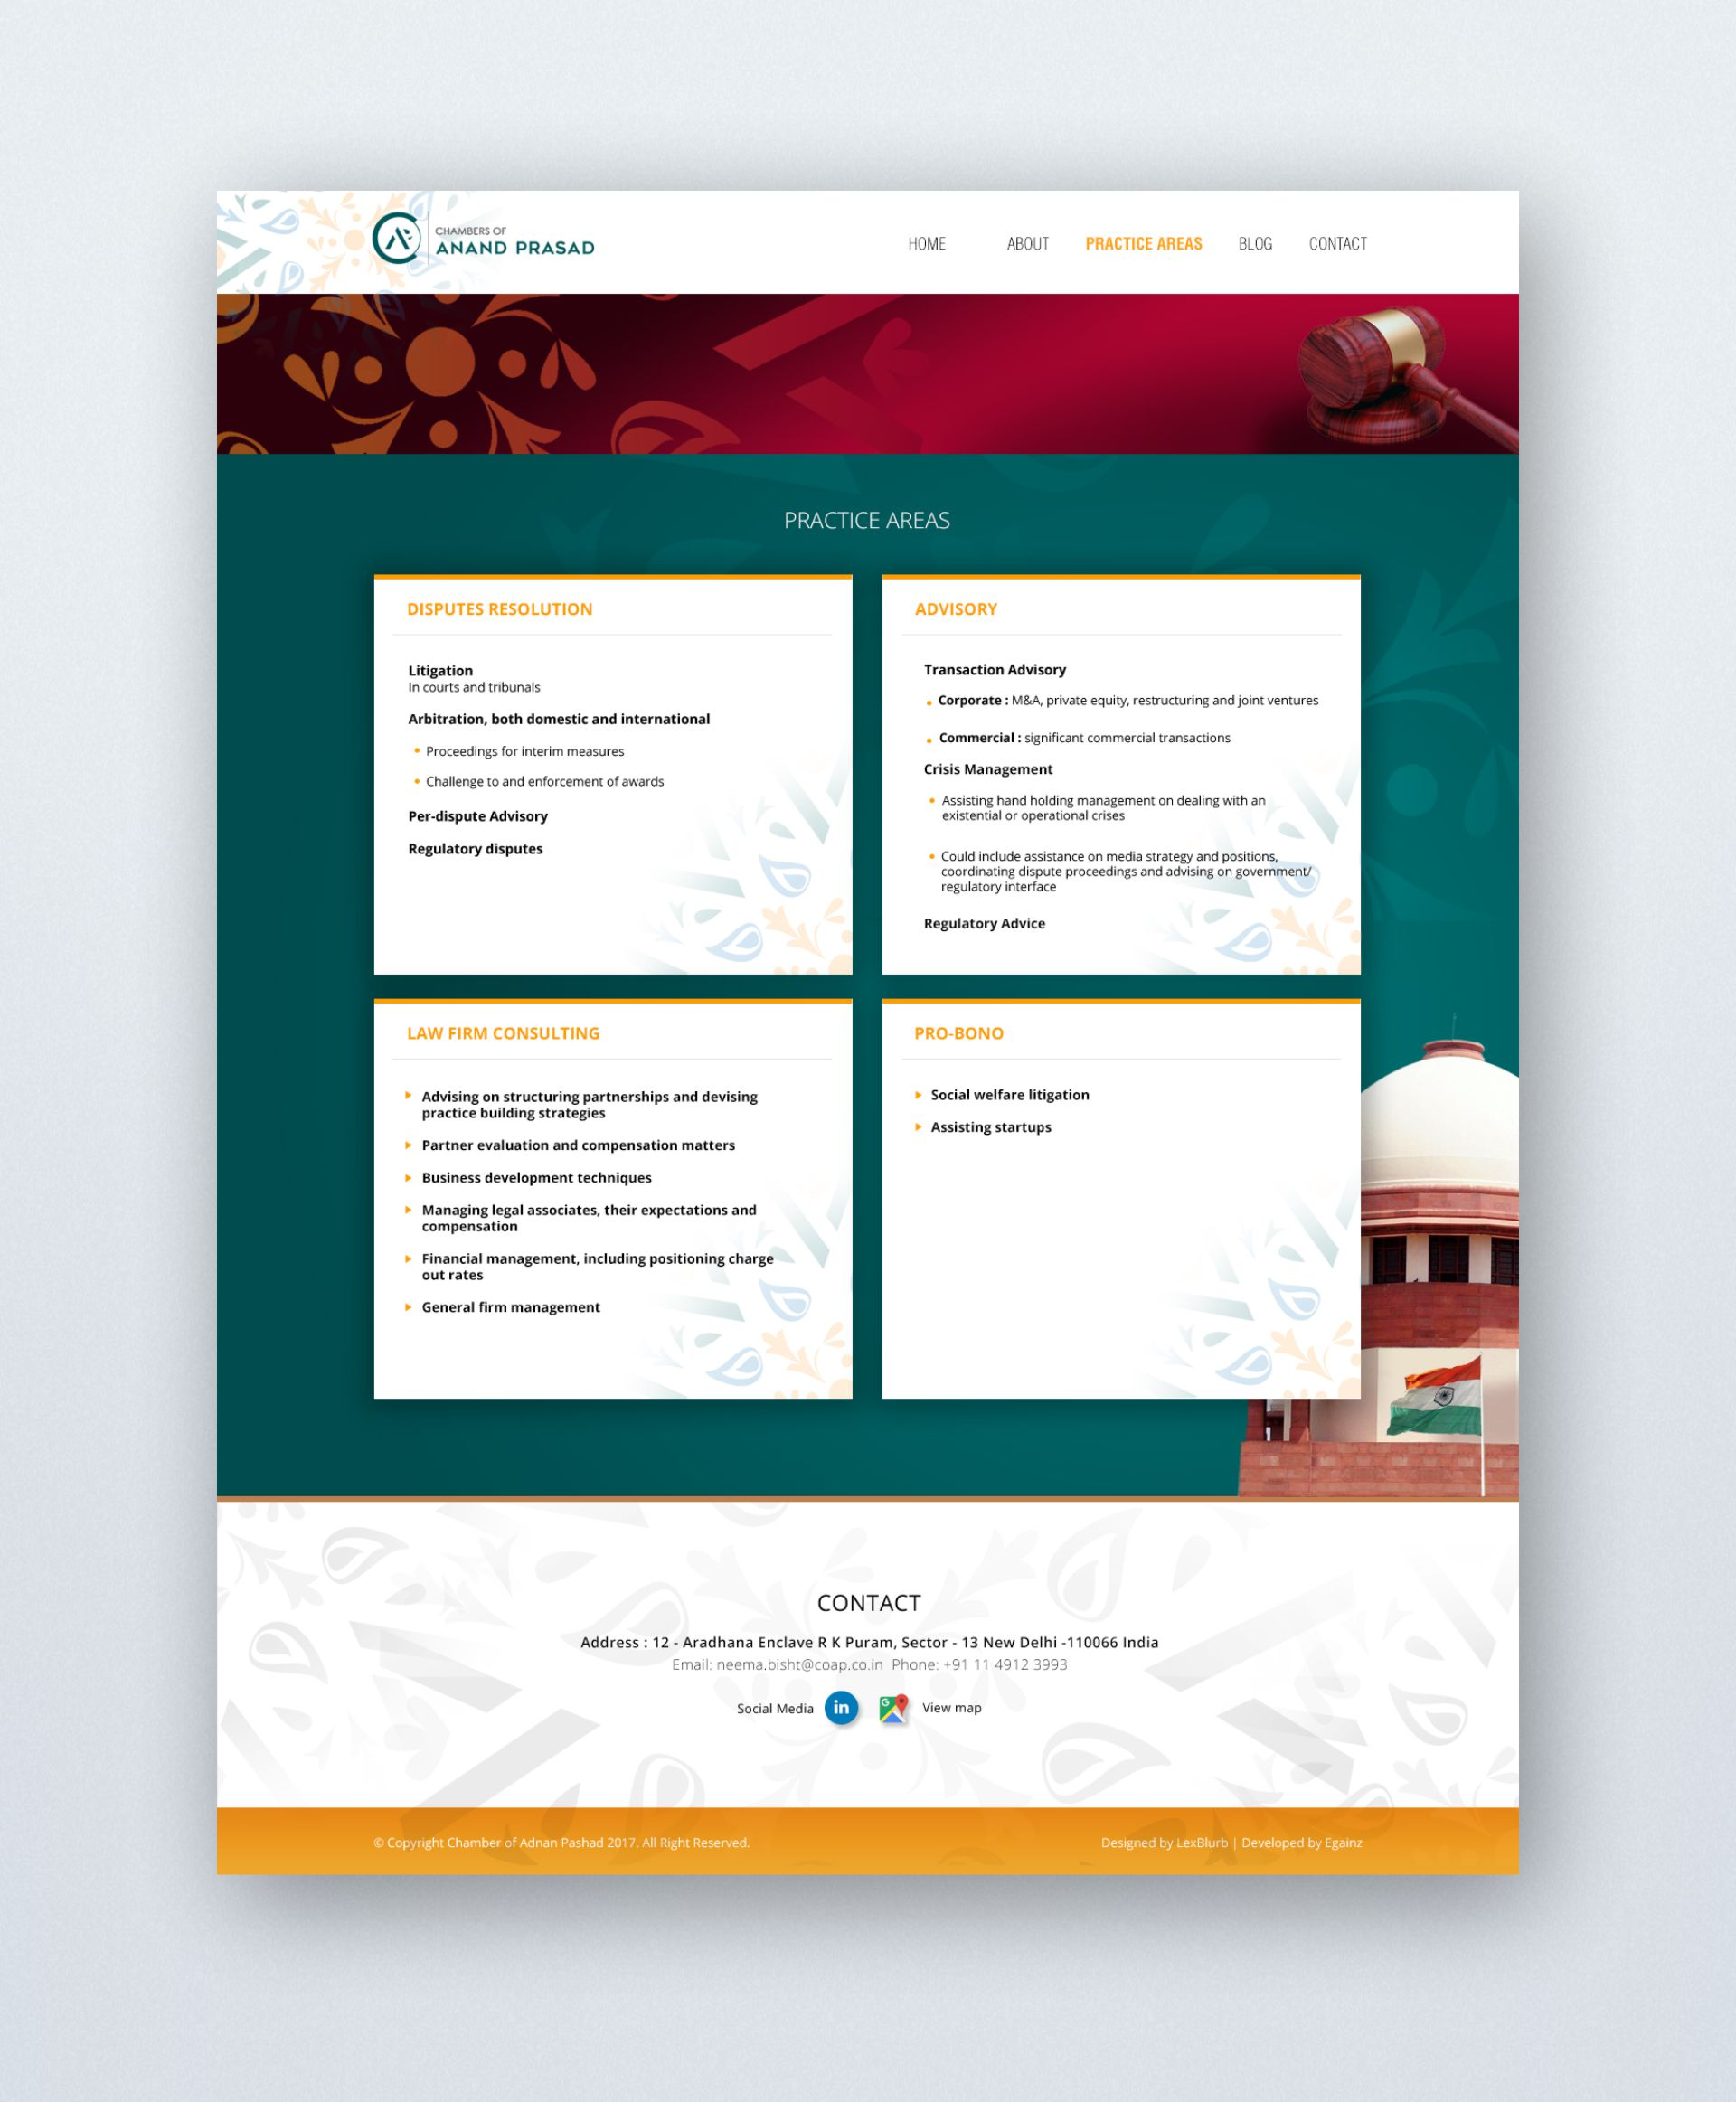 Chambers of Anand Prasad - Website Design - Practice Areas